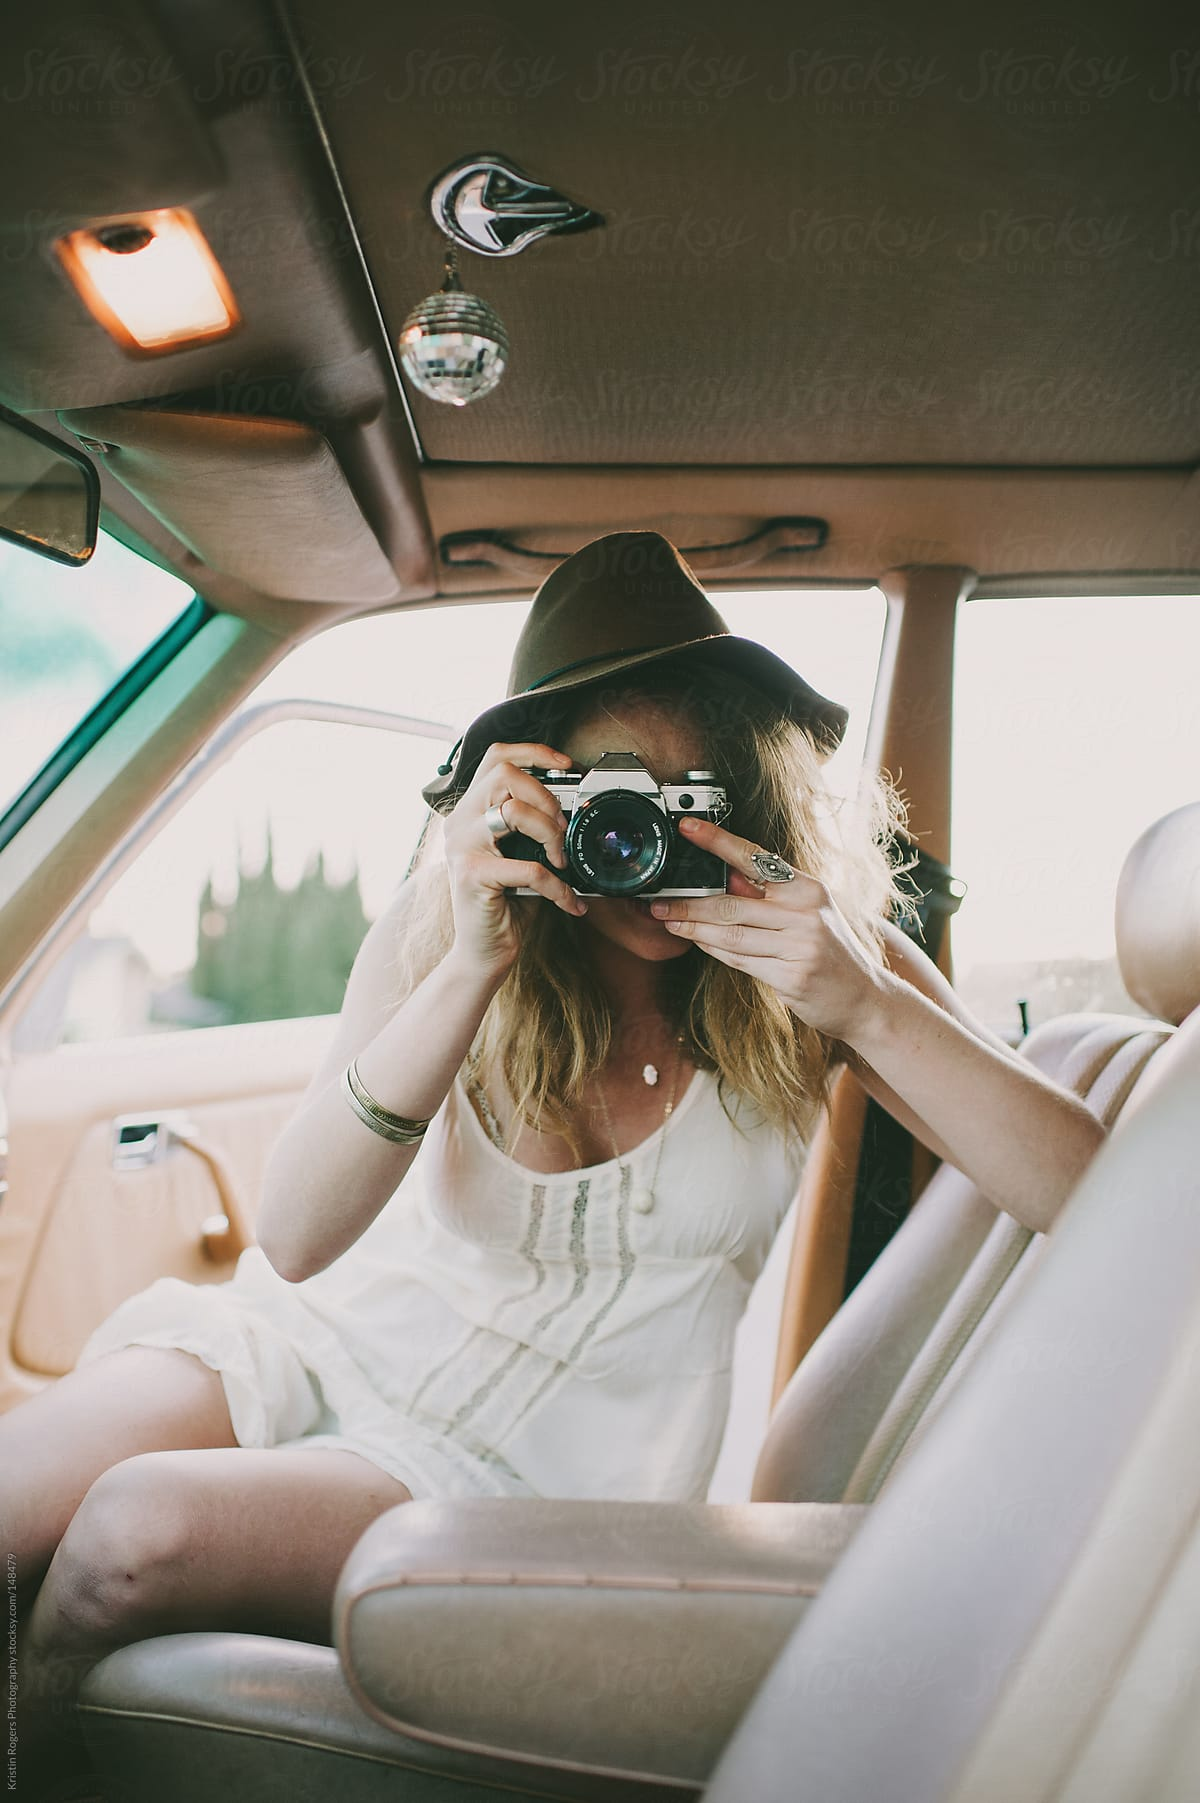 Pretty stylish girl playing with camera inside of old car by